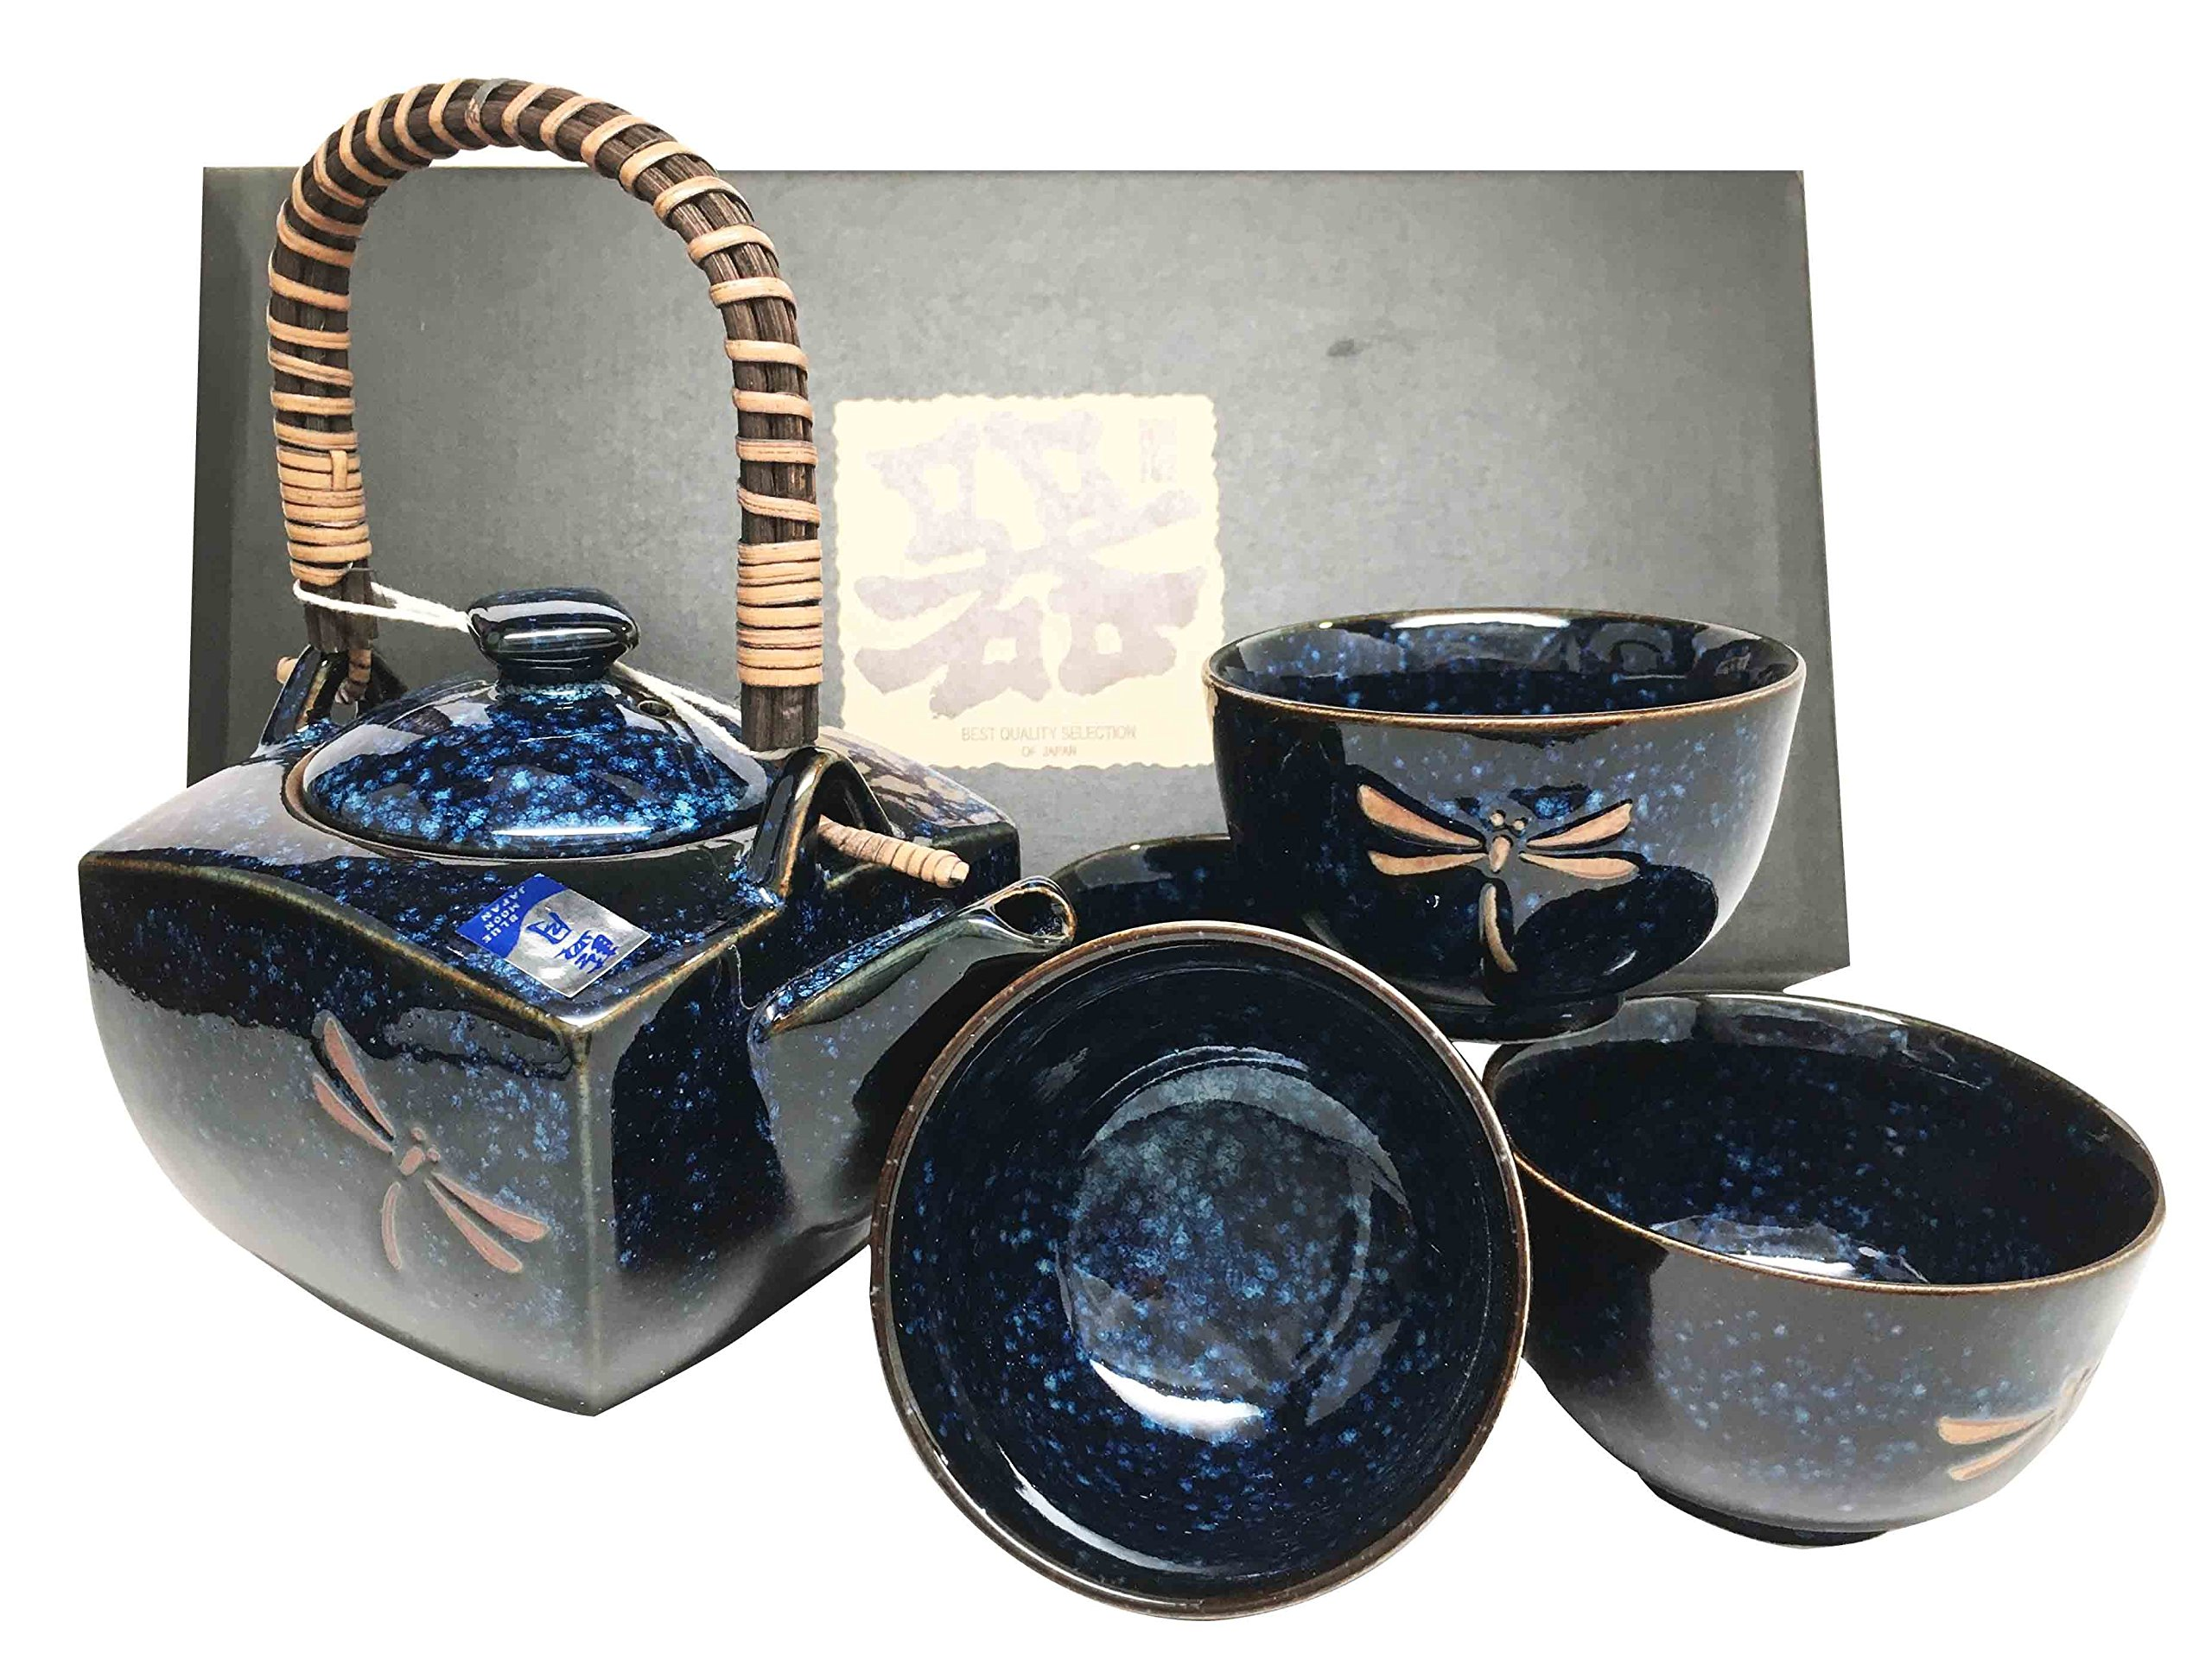 Made In Japan Tombo Dragonfly Blue Glazed Ceramic Tea Pot and Cups Set Serves 4 Beautifully Packaged in Gift Box Excellent Home Decor Asian Living Gift for Sophisticated Moms And Housewarming